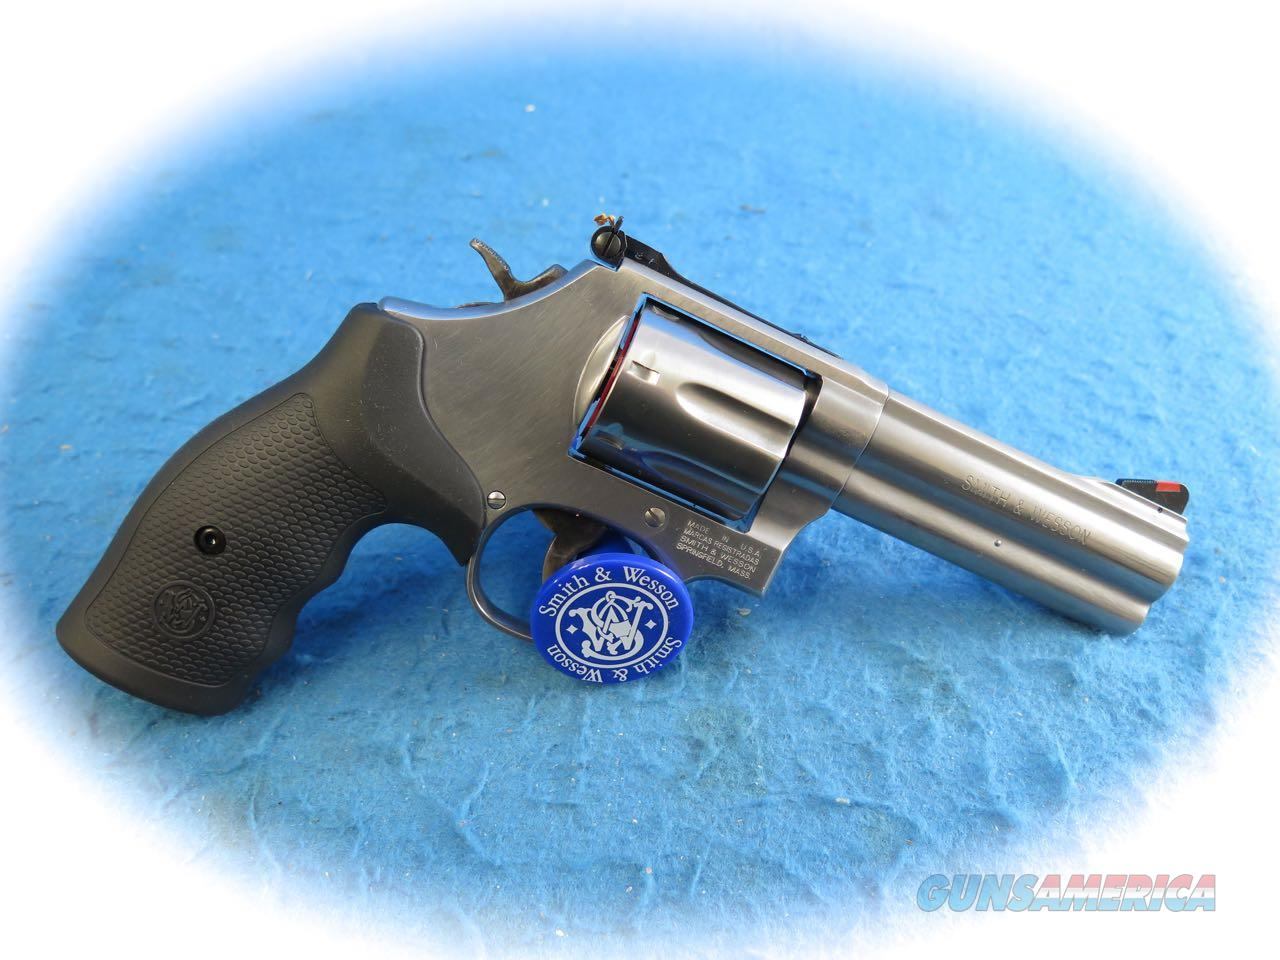 Smith & Wesson 686 Plus .357 Mag SS Revolver  4 Inch BBL  SKU  164194 **New**  Guns > Pistols > Smith & Wesson Revolvers > Med. Frame ( K/L )